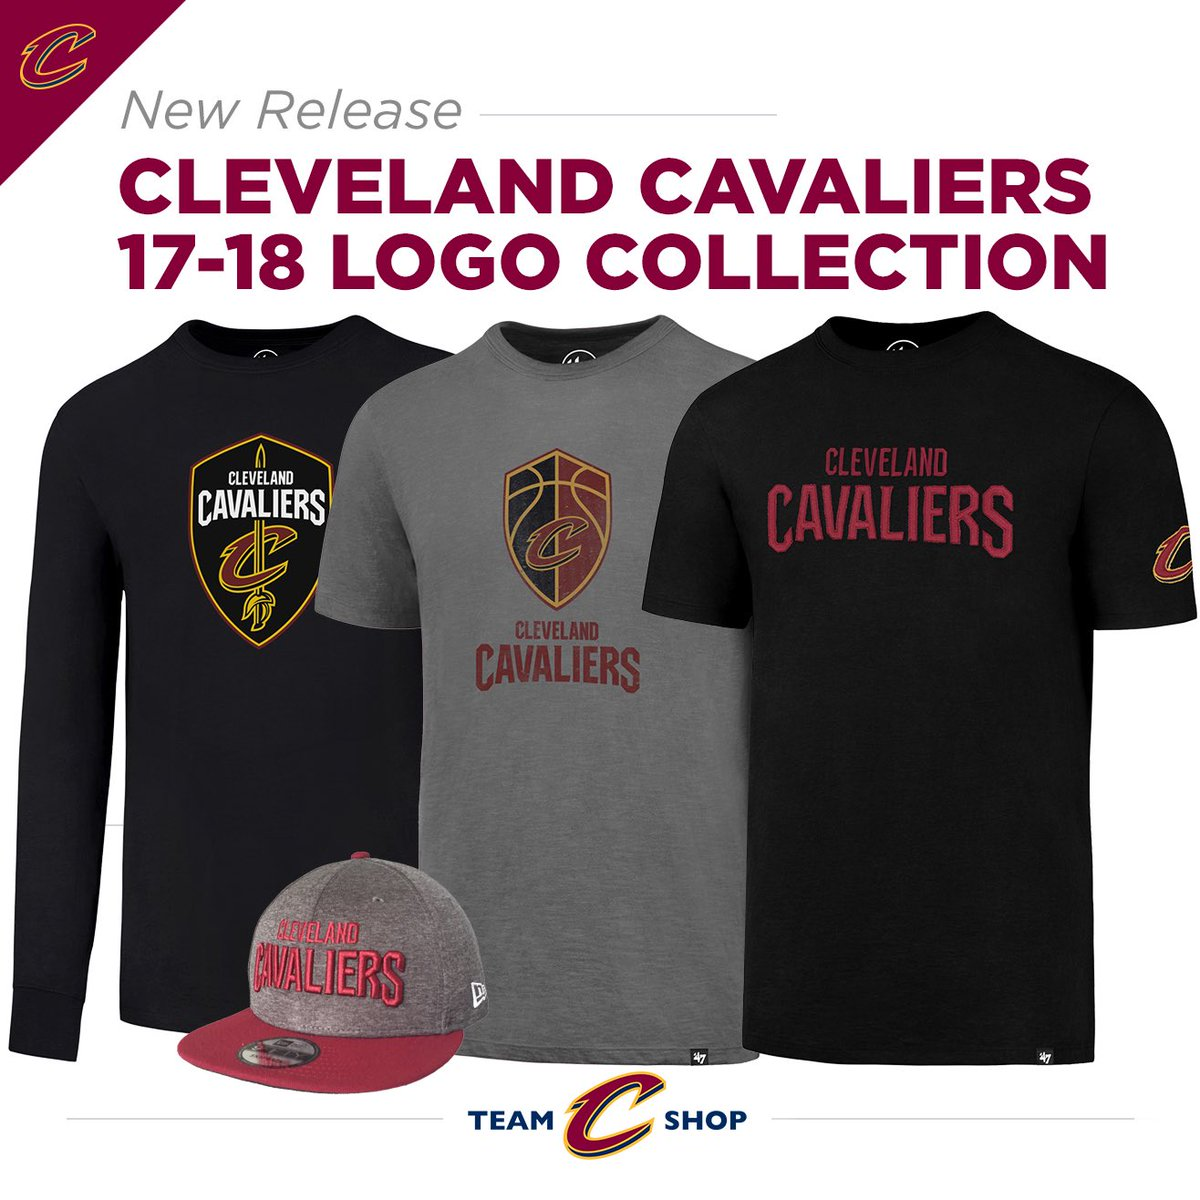 new concept e06ea 03e35 New Cleveland Cavaliers Logos/Colors for 2017-2018 - Page 2 ...